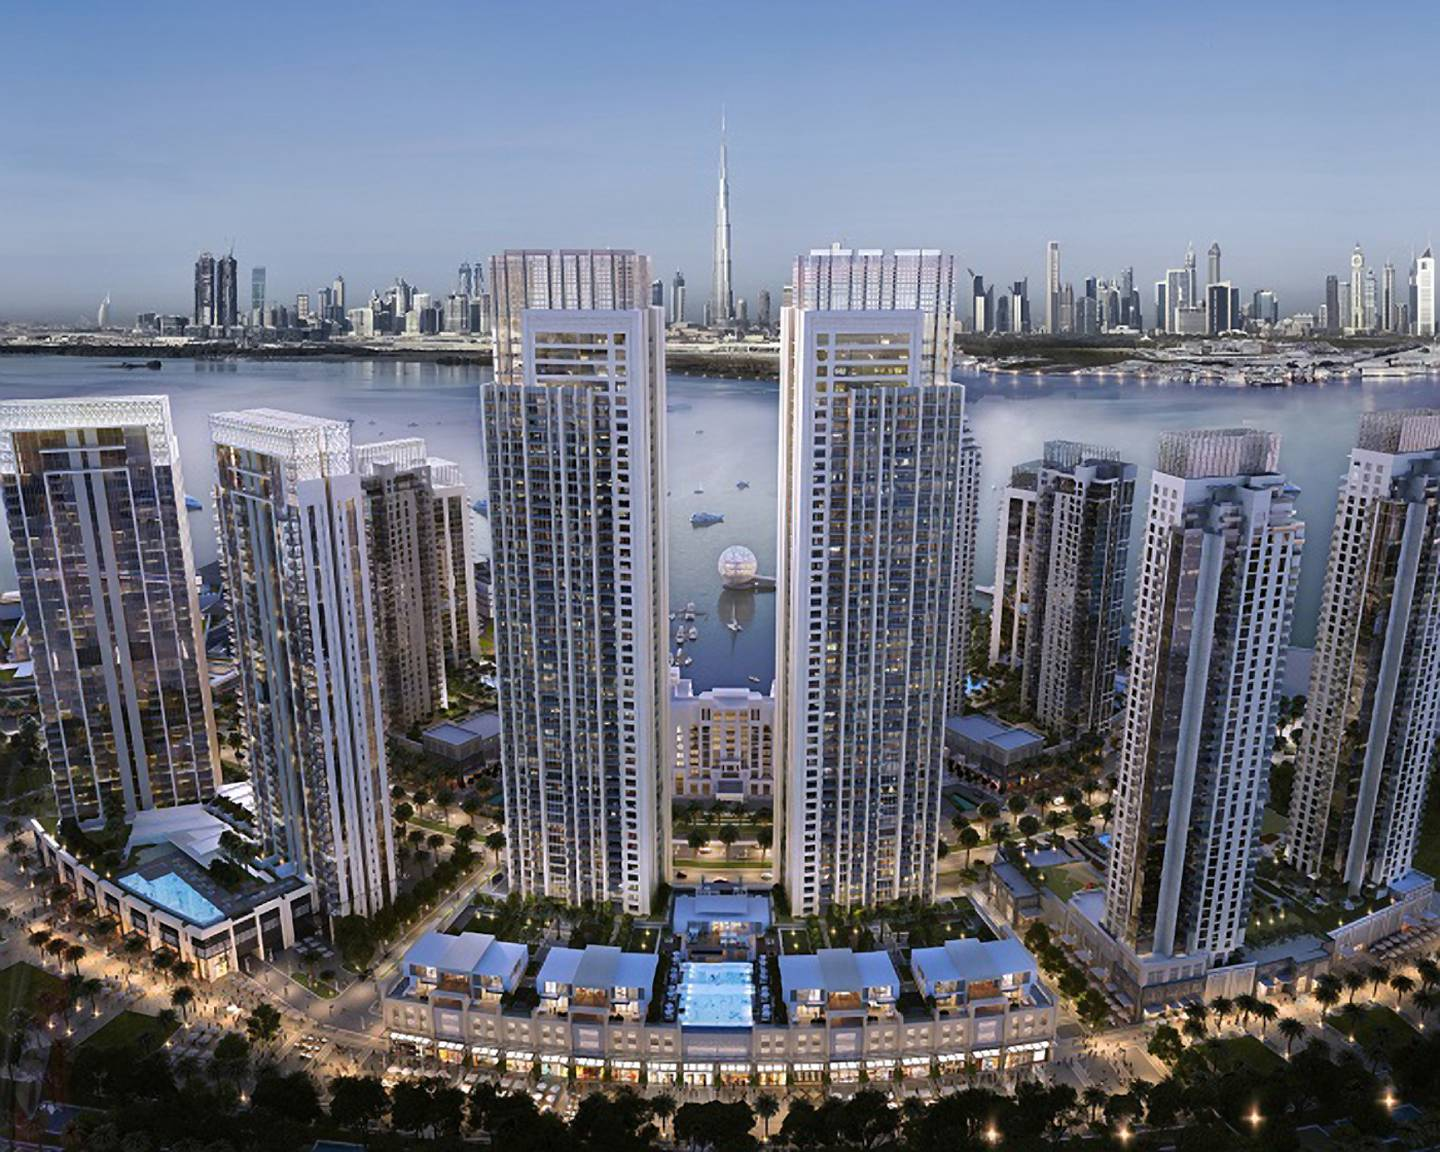 Dubai, UAE; January 17, 2016: Emaar Properties launches 'Harbour Views' residences in The Island District of Dubai Creek Harbour. The 6 sq km integrated two-tower development with a three-level podium will be the tallest residential project of its kind in the Island District and will be defined by its central location and views. Courtesy Emaar *** Local Caption ***  Harbour Views at Dubai Creek Harbour 3.jpg